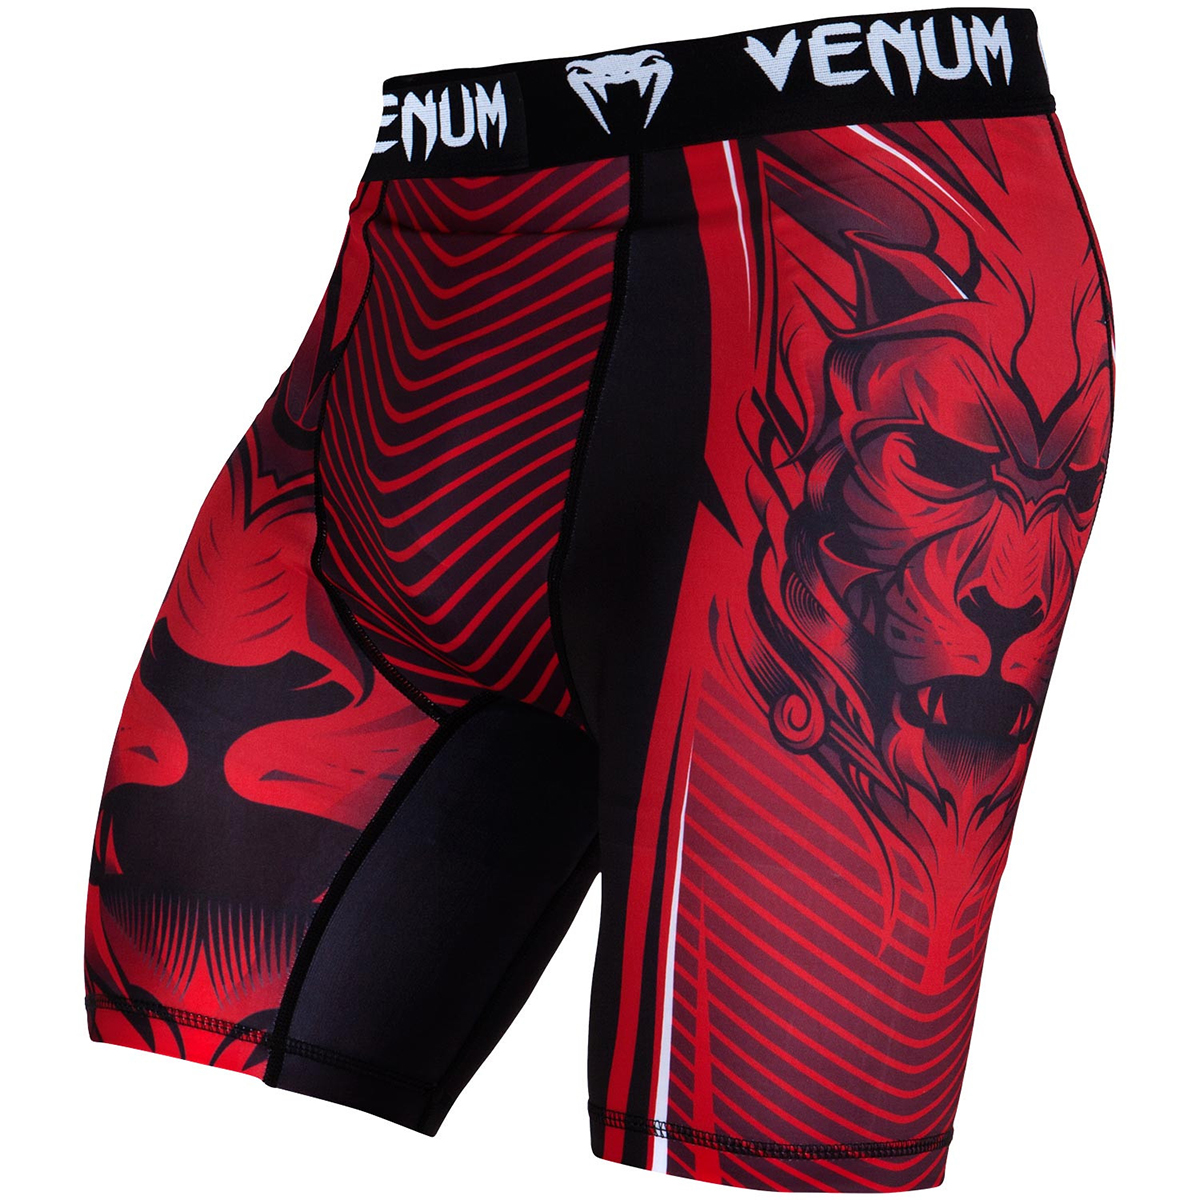 Venum Bloody Roar Dry Tech Compression Vale Tudo Fight Shorts - Red